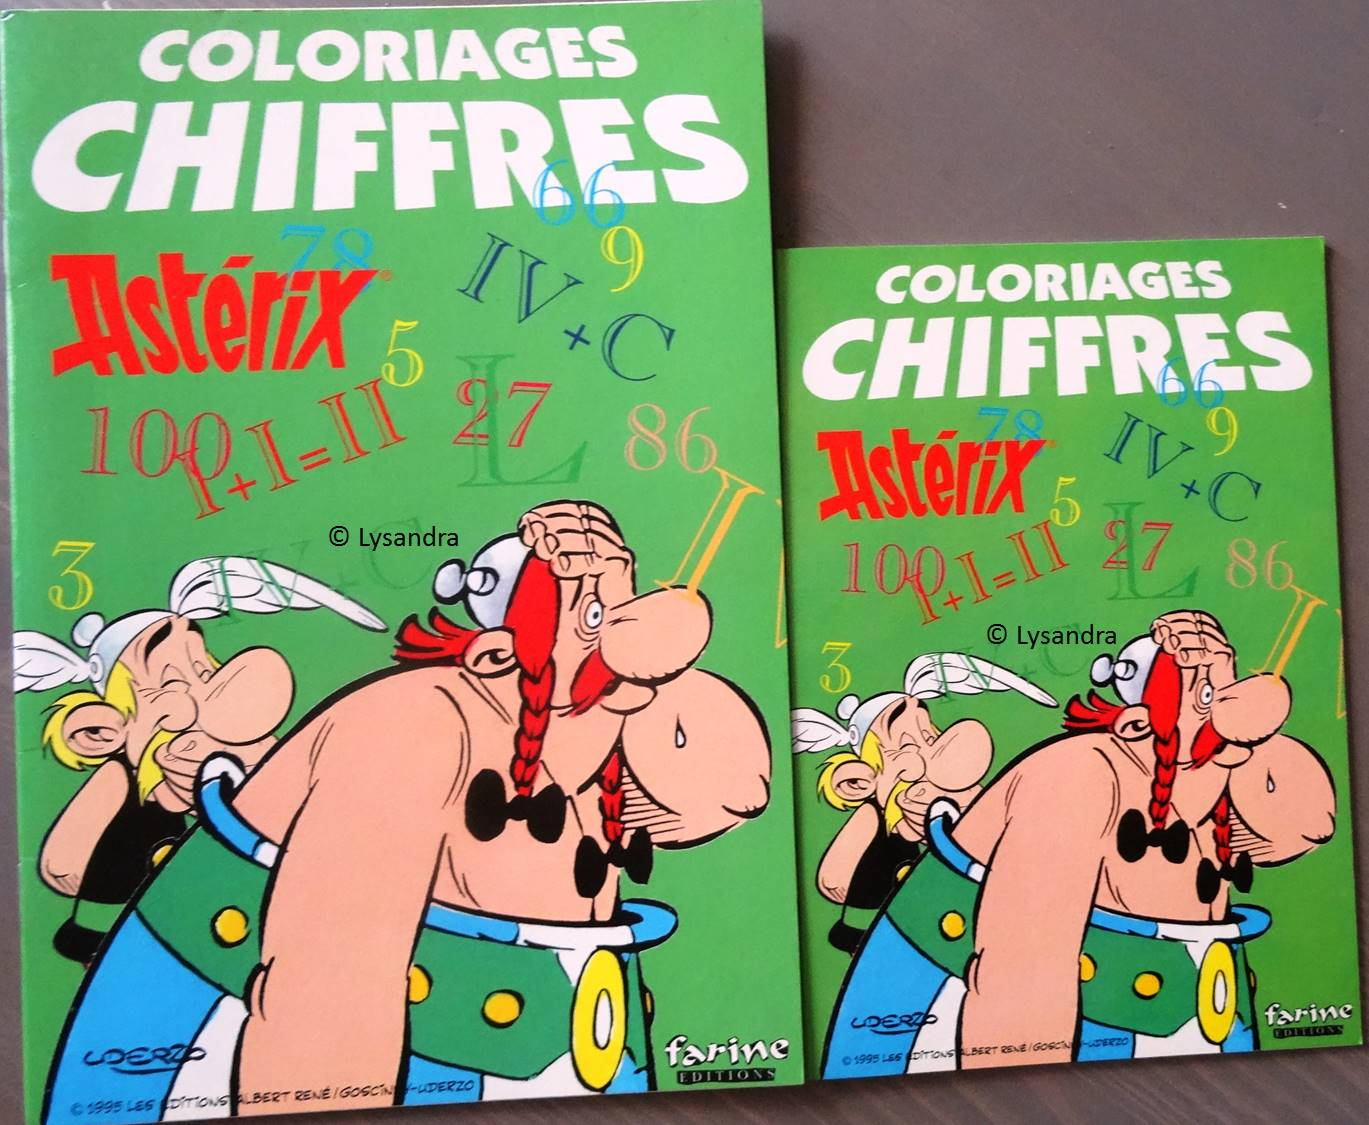 Coloriages Editions Farine G70K